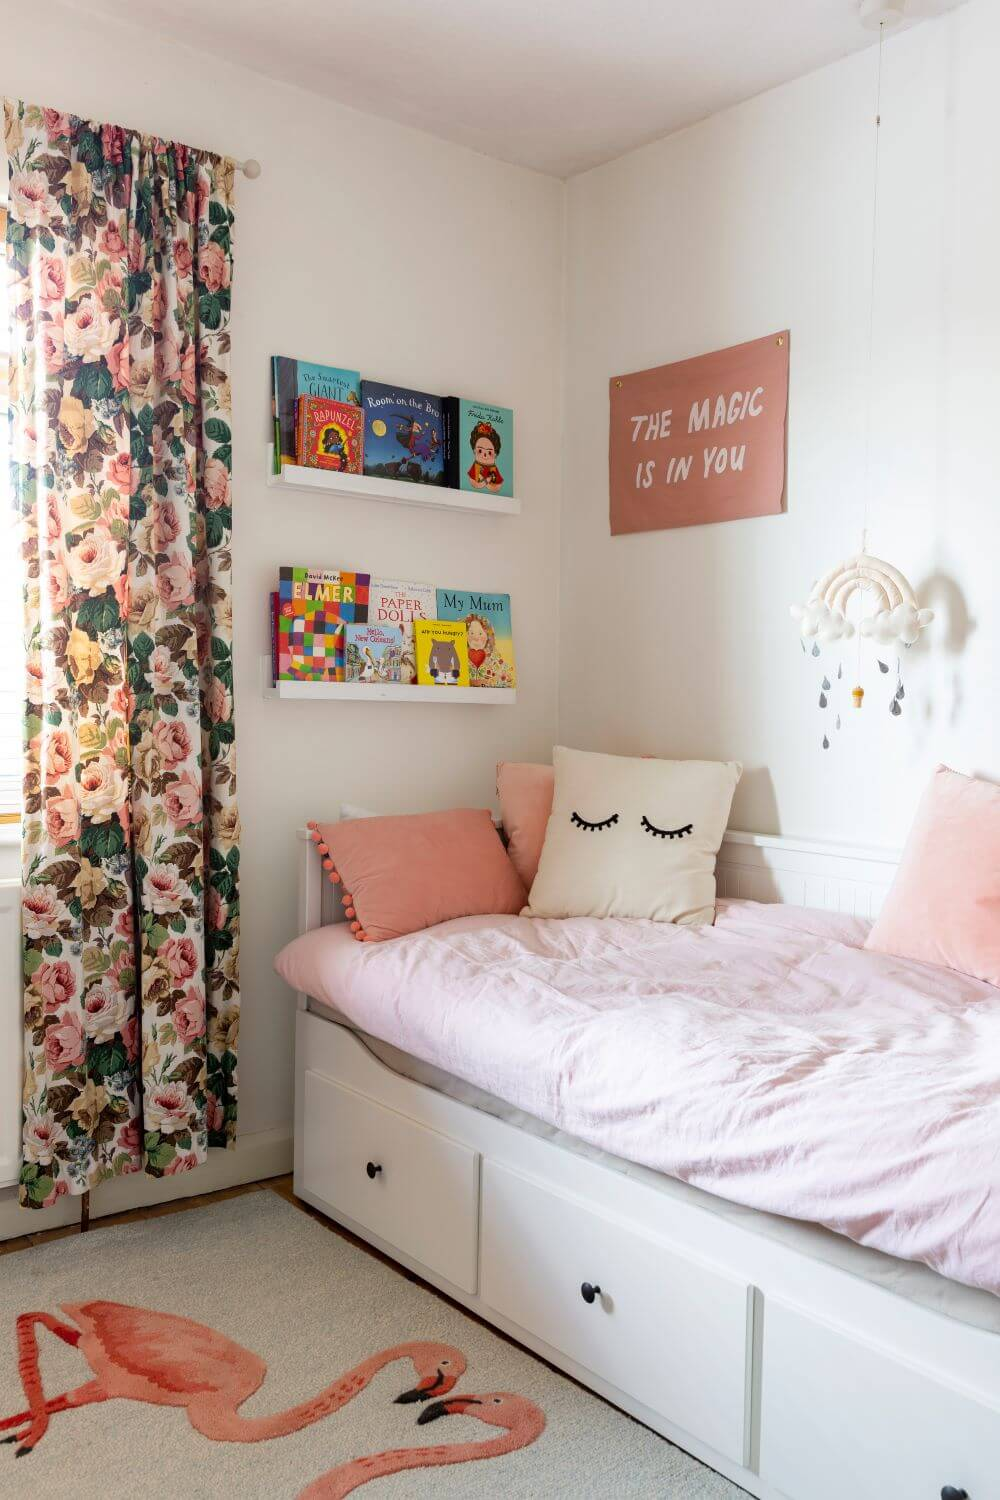 Daybed in front of picture ledges hung on the wall and lined with childrens books.